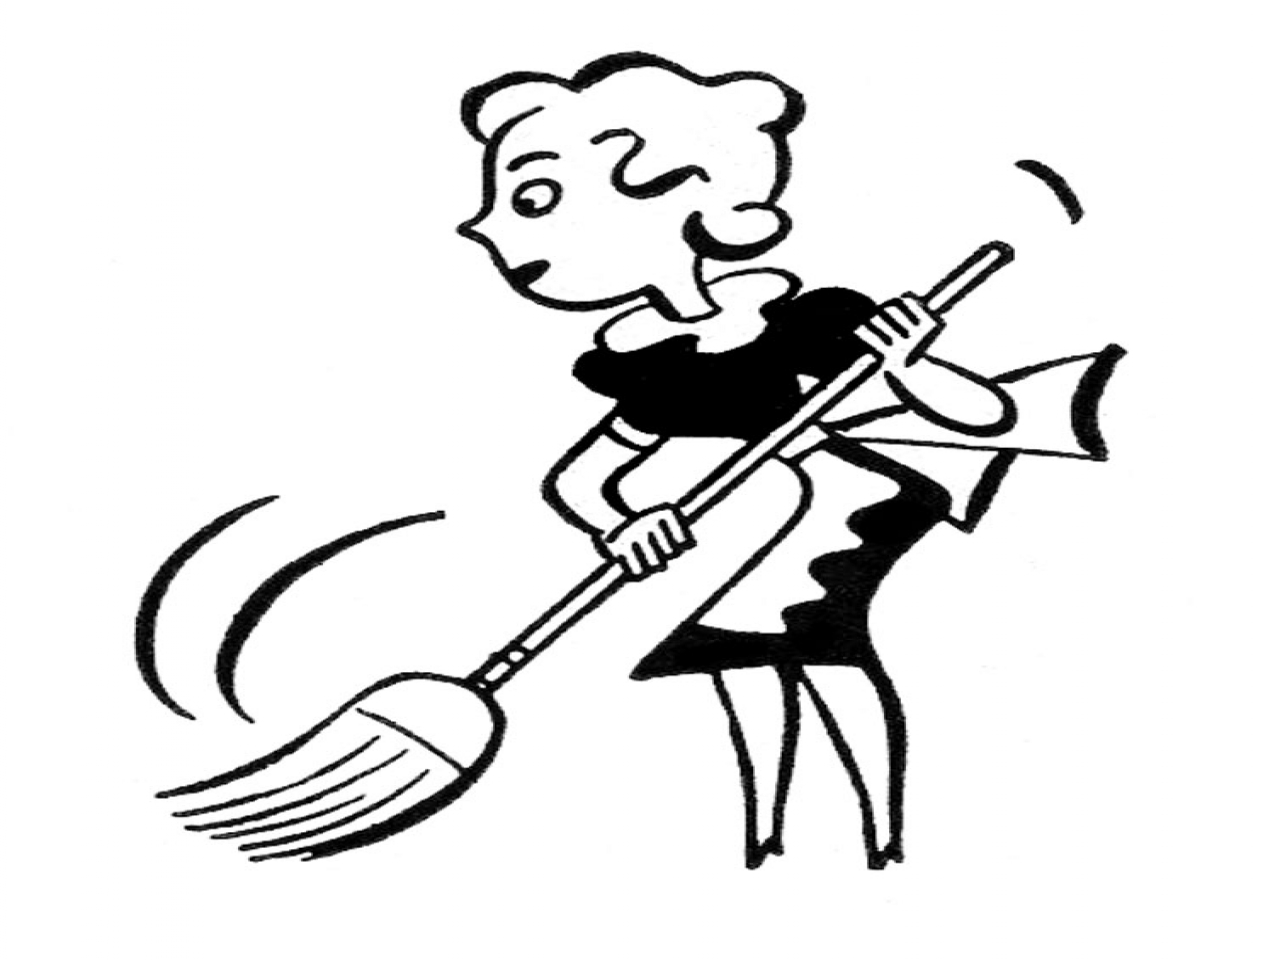 Free Cleaning Clip Art Black And White, Download Free Clip.